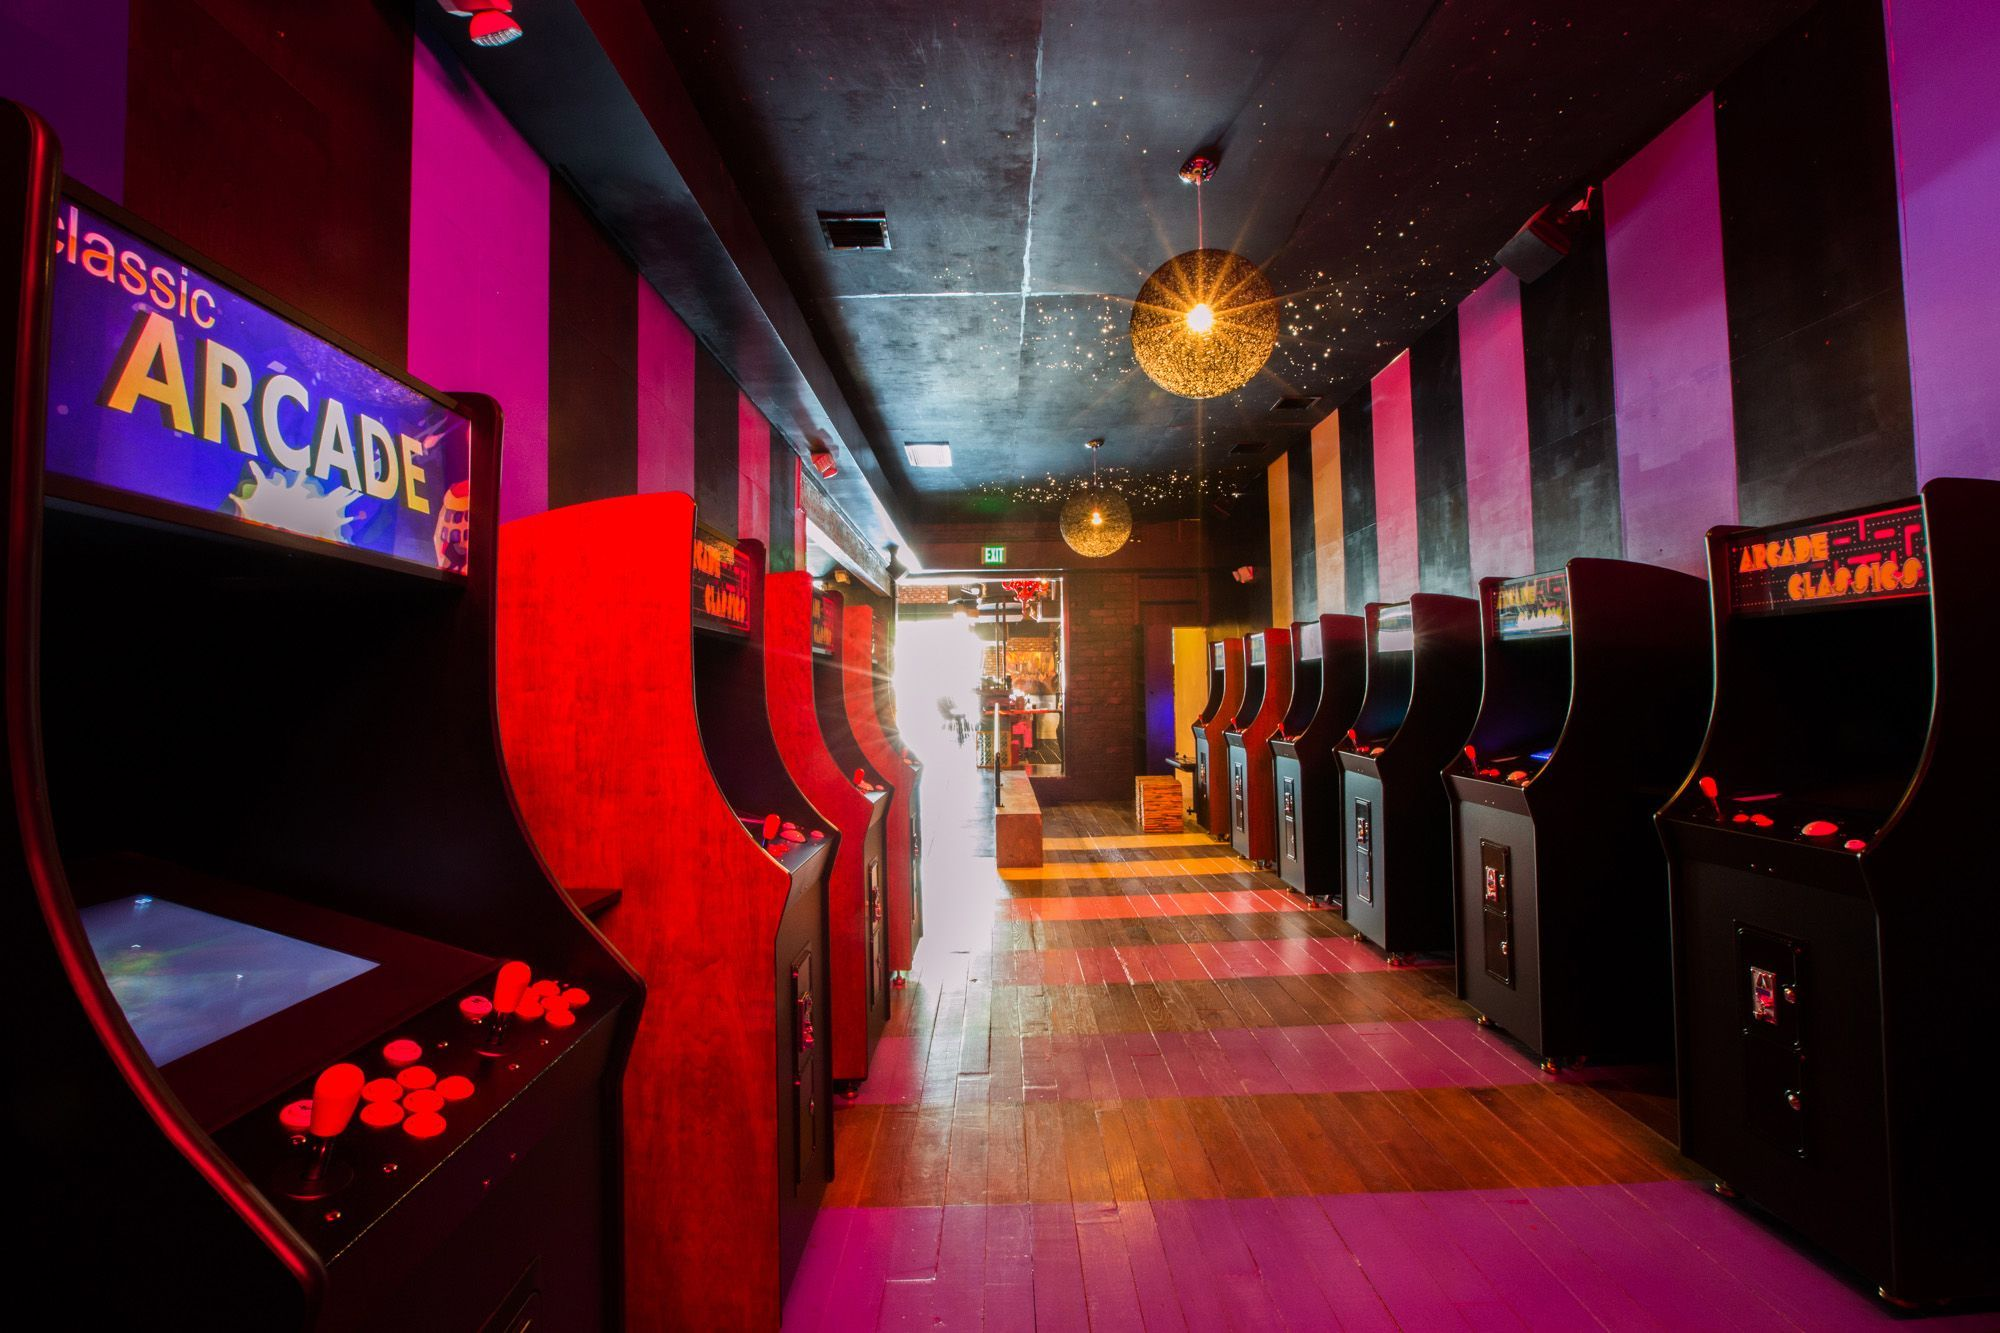 The One Up A New Bar Arcade Now Gaming Up Sherman Oaks Barcade Sherman Oaks Now Games